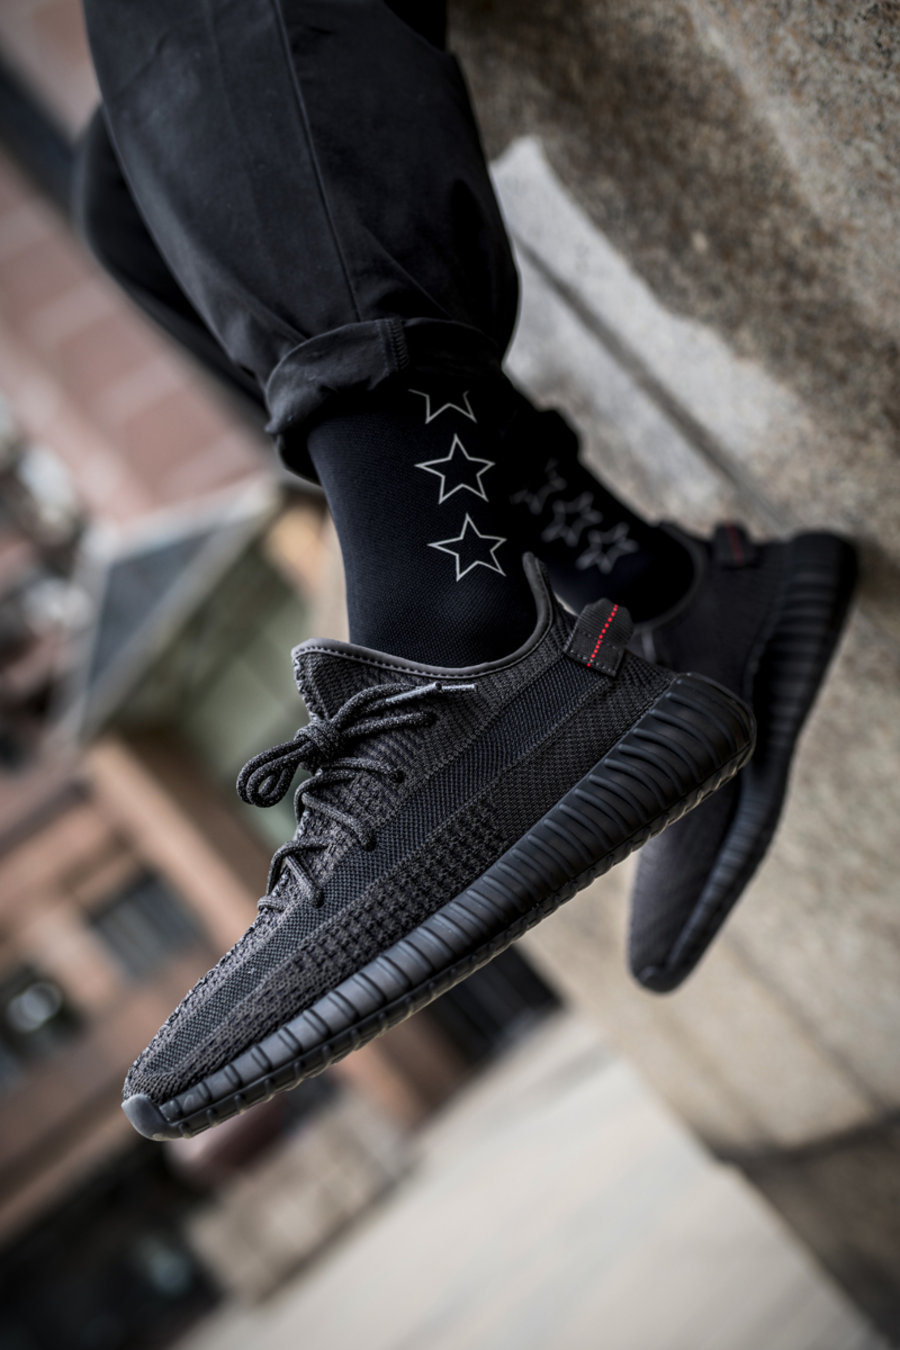 adidas,Synth,发售,yeezy,yeezy 35  国内也发满天星!「亚限 2.0」 Yeezy 350 V2 定档下周!